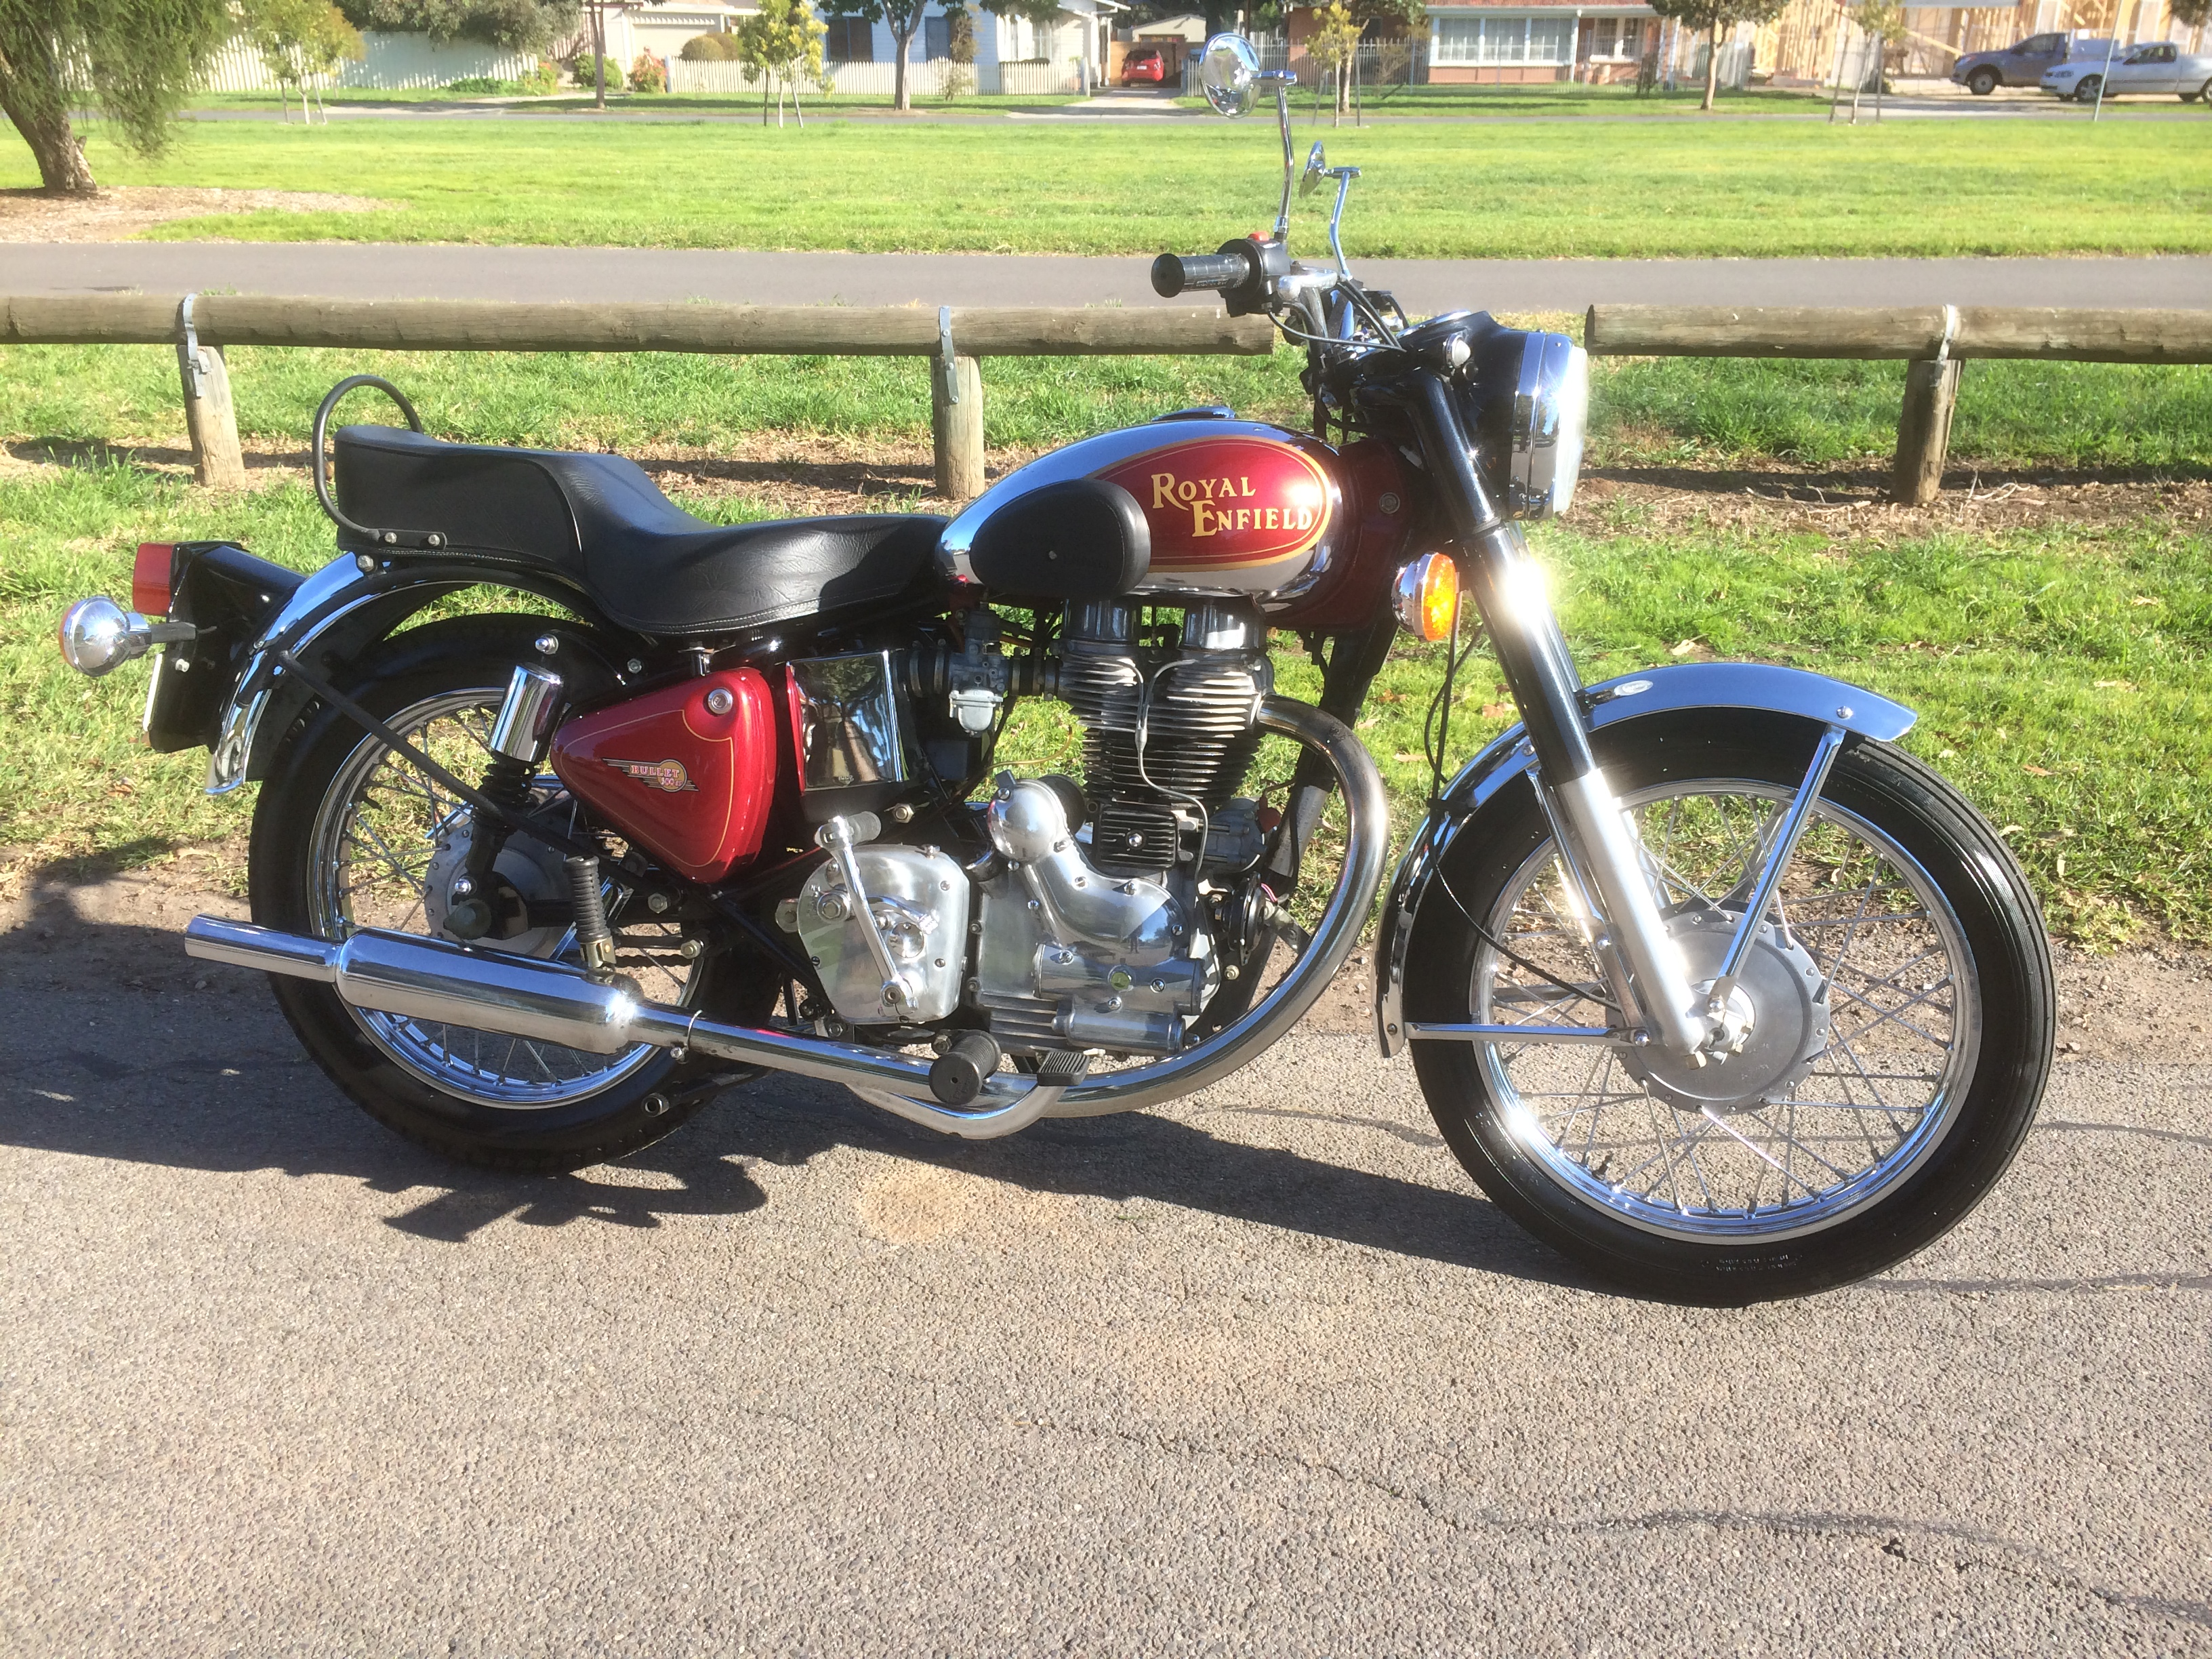 Royal Enfield Bullet 500 ES Deluxe 2008 images #127771